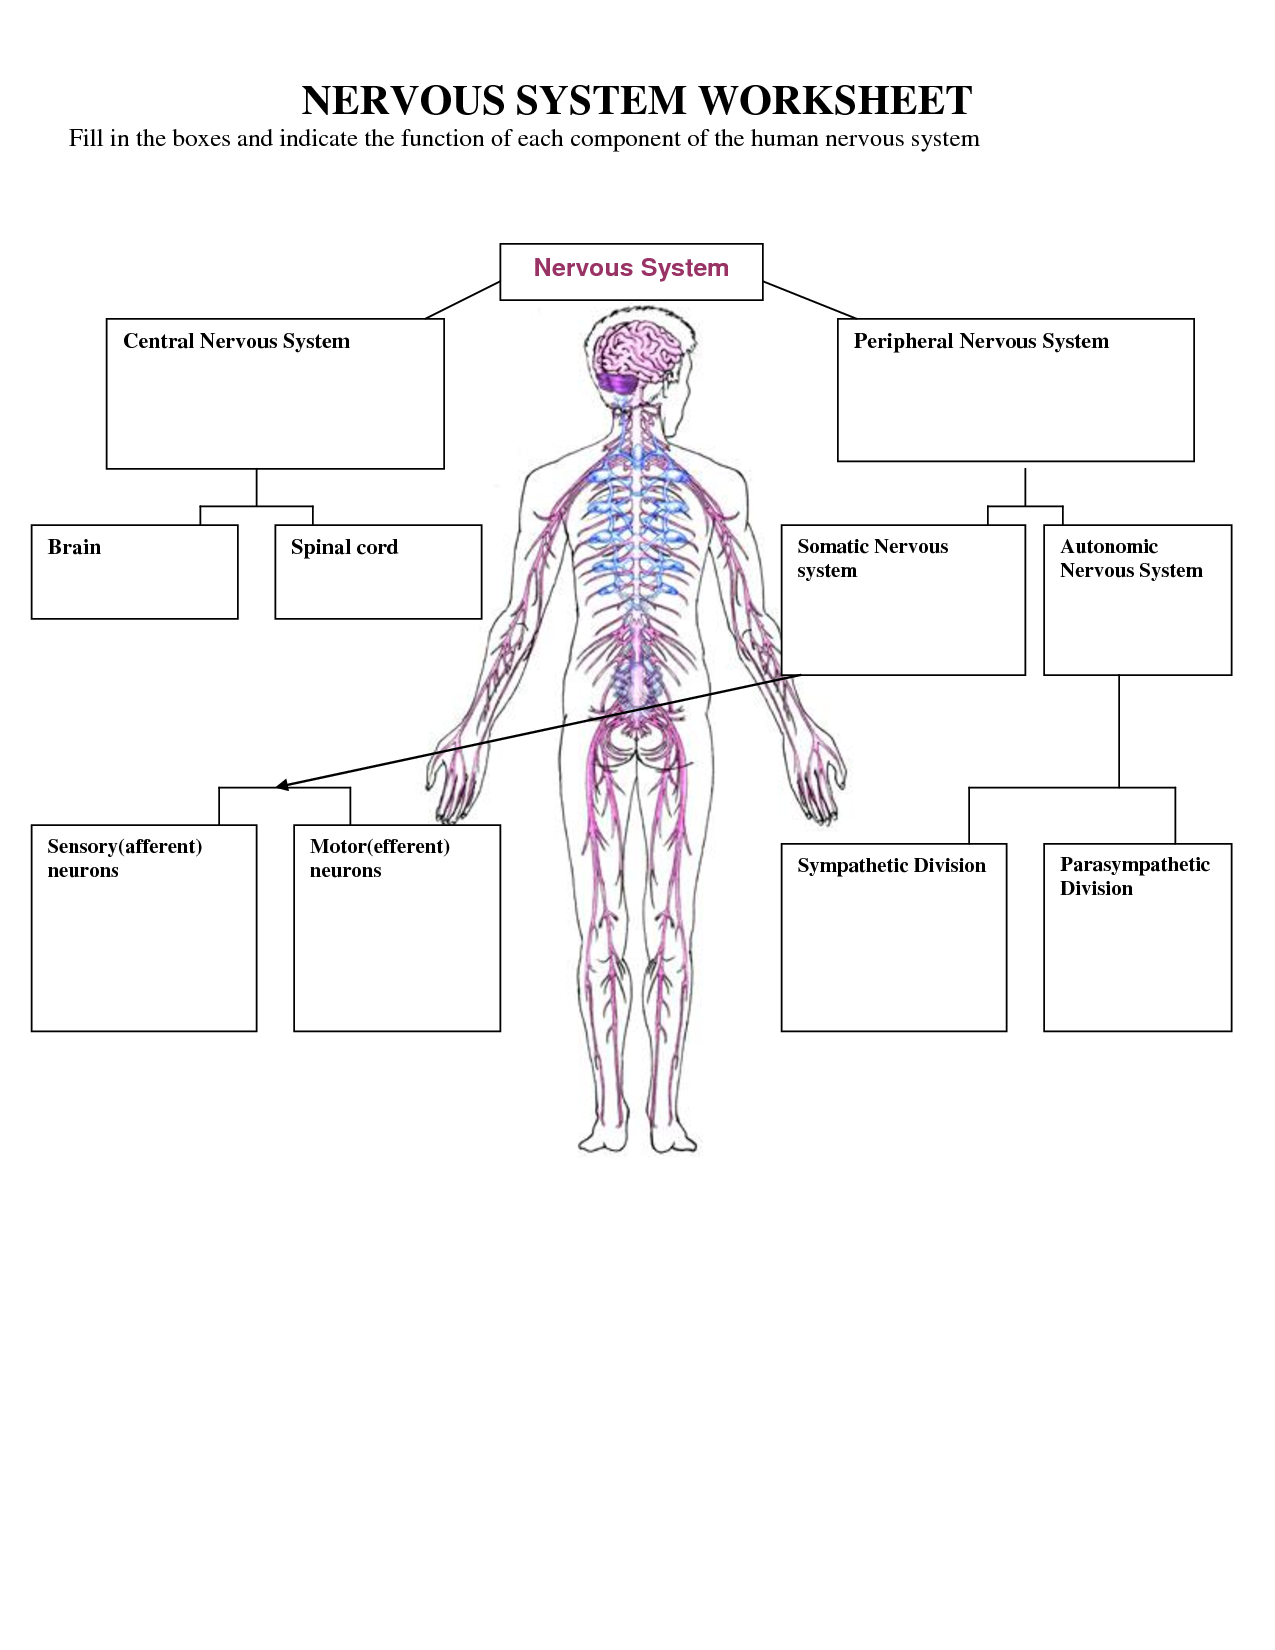 nervous system worksheets places to visit pinterest nervous system worksheets and teacher. Black Bedroom Furniture Sets. Home Design Ideas